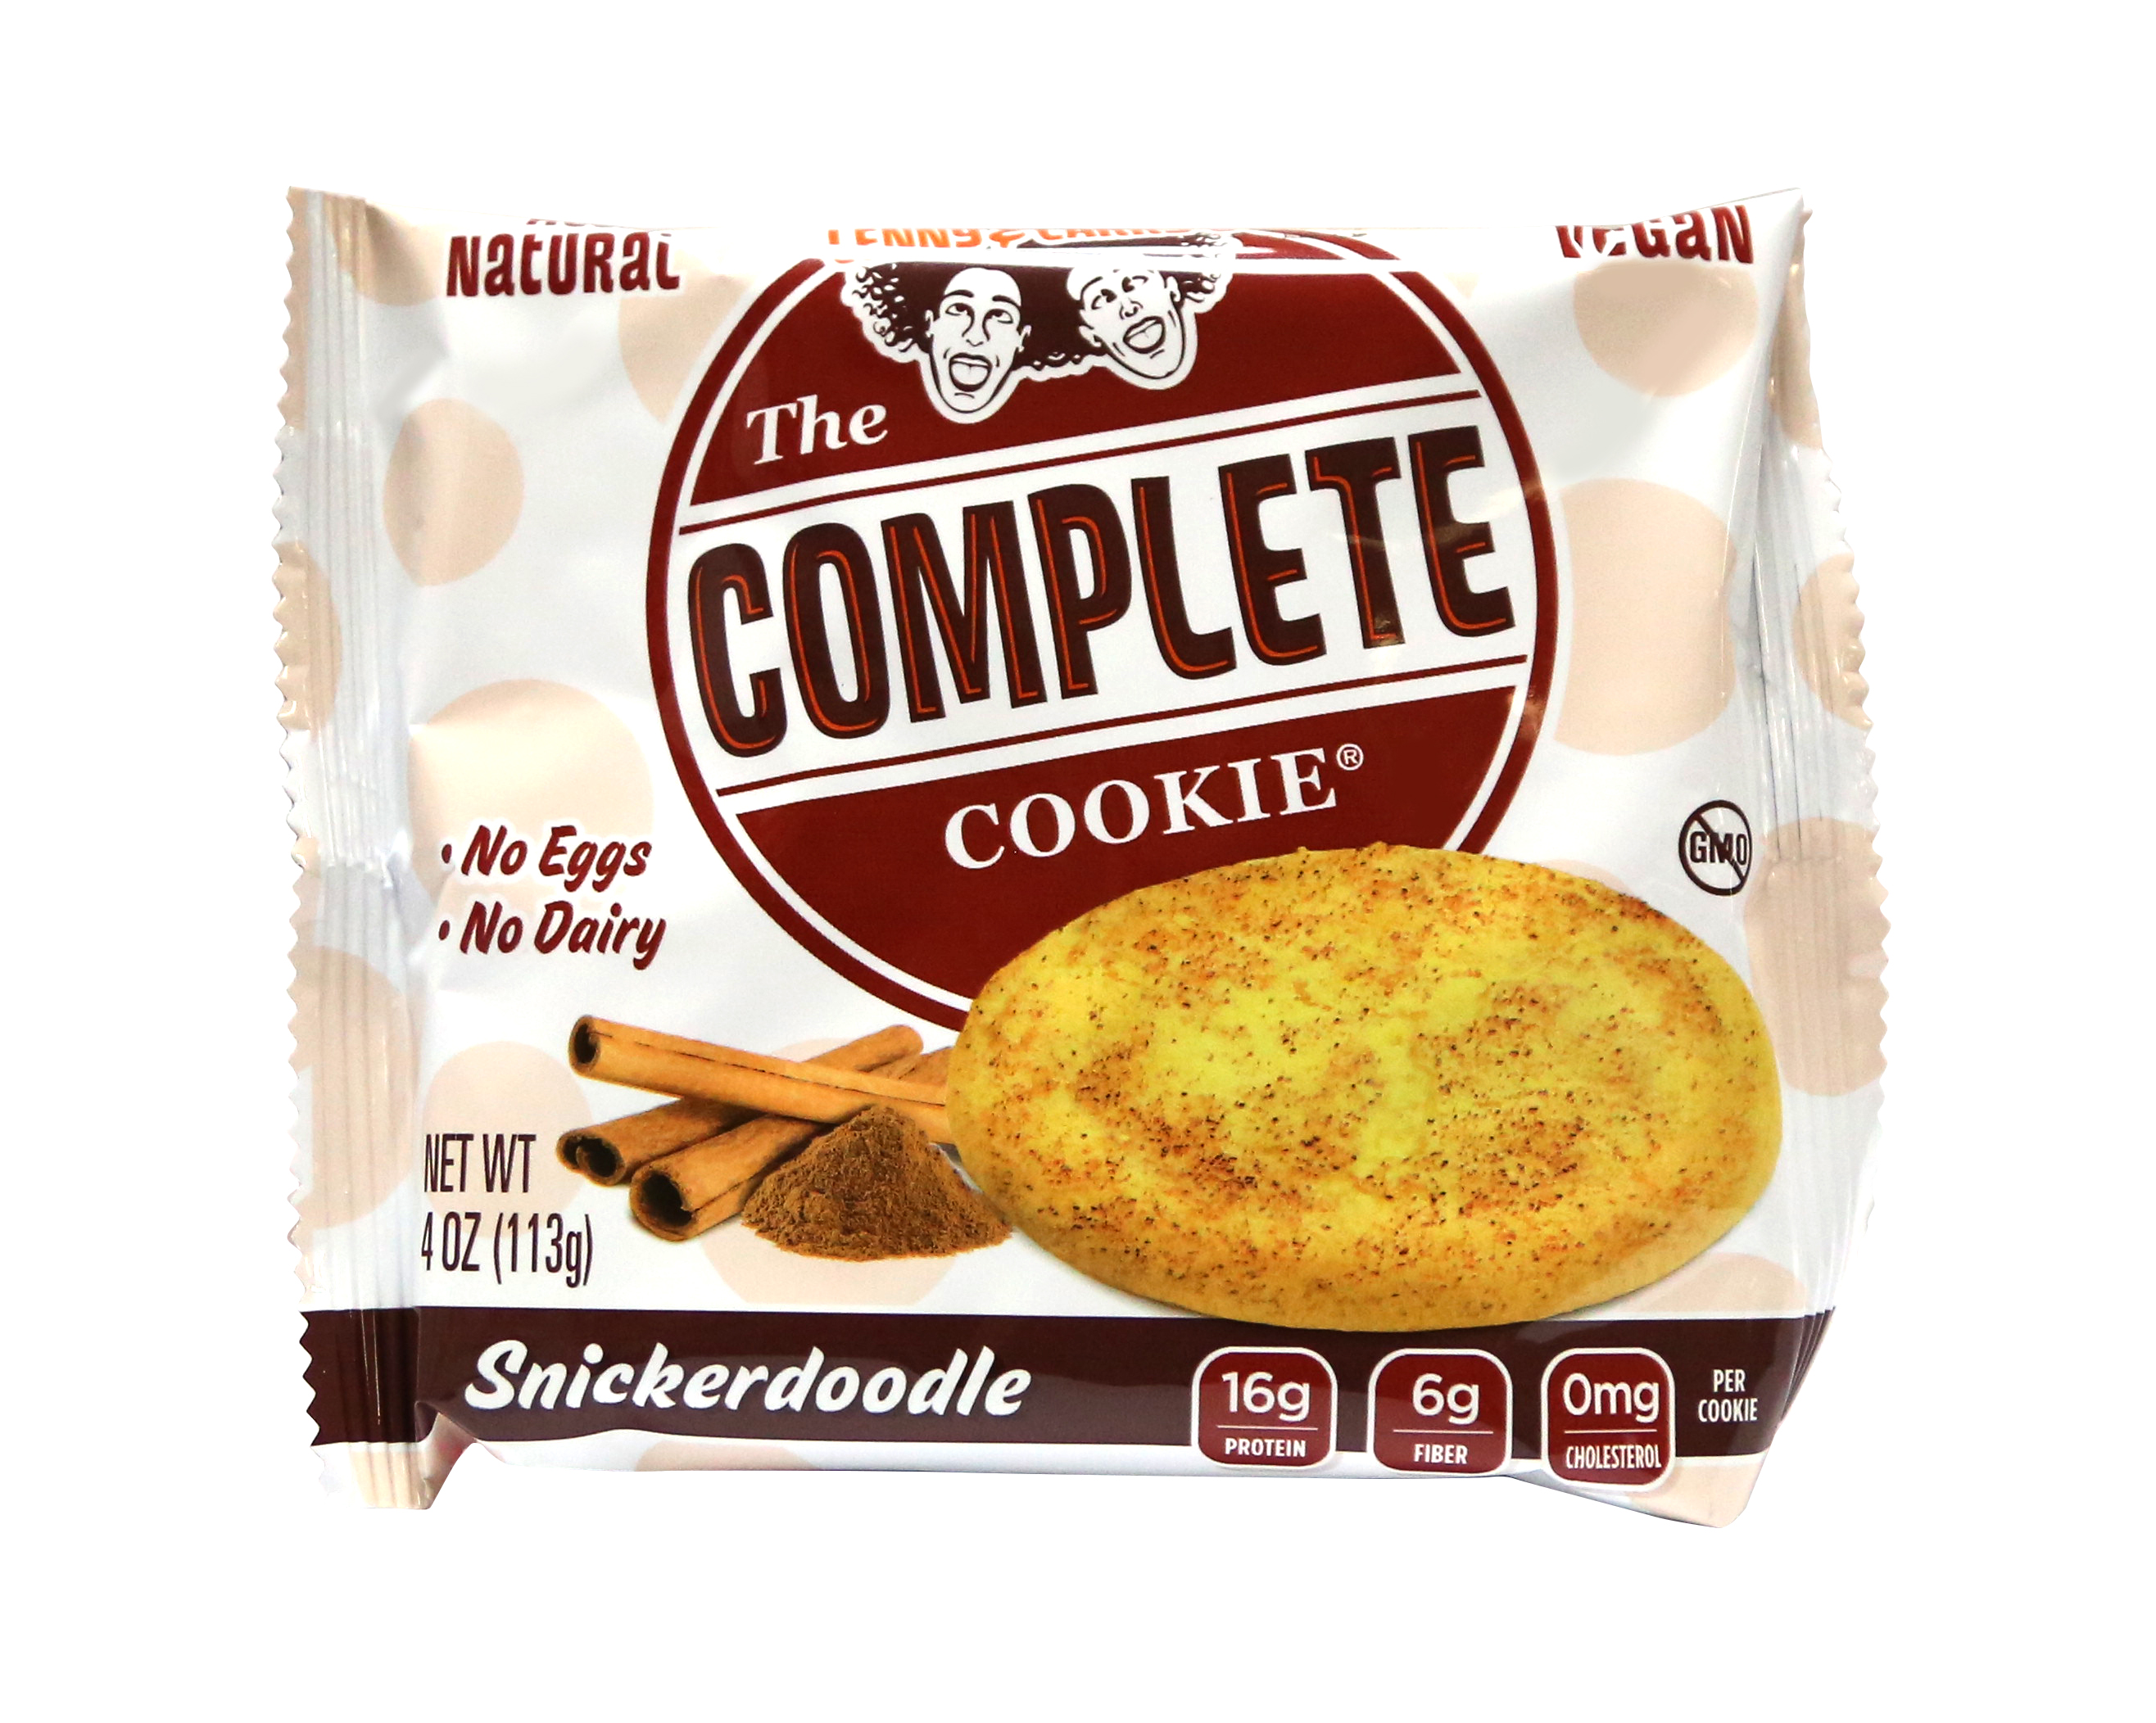 snickerdoodle-cookie-2448.jpg